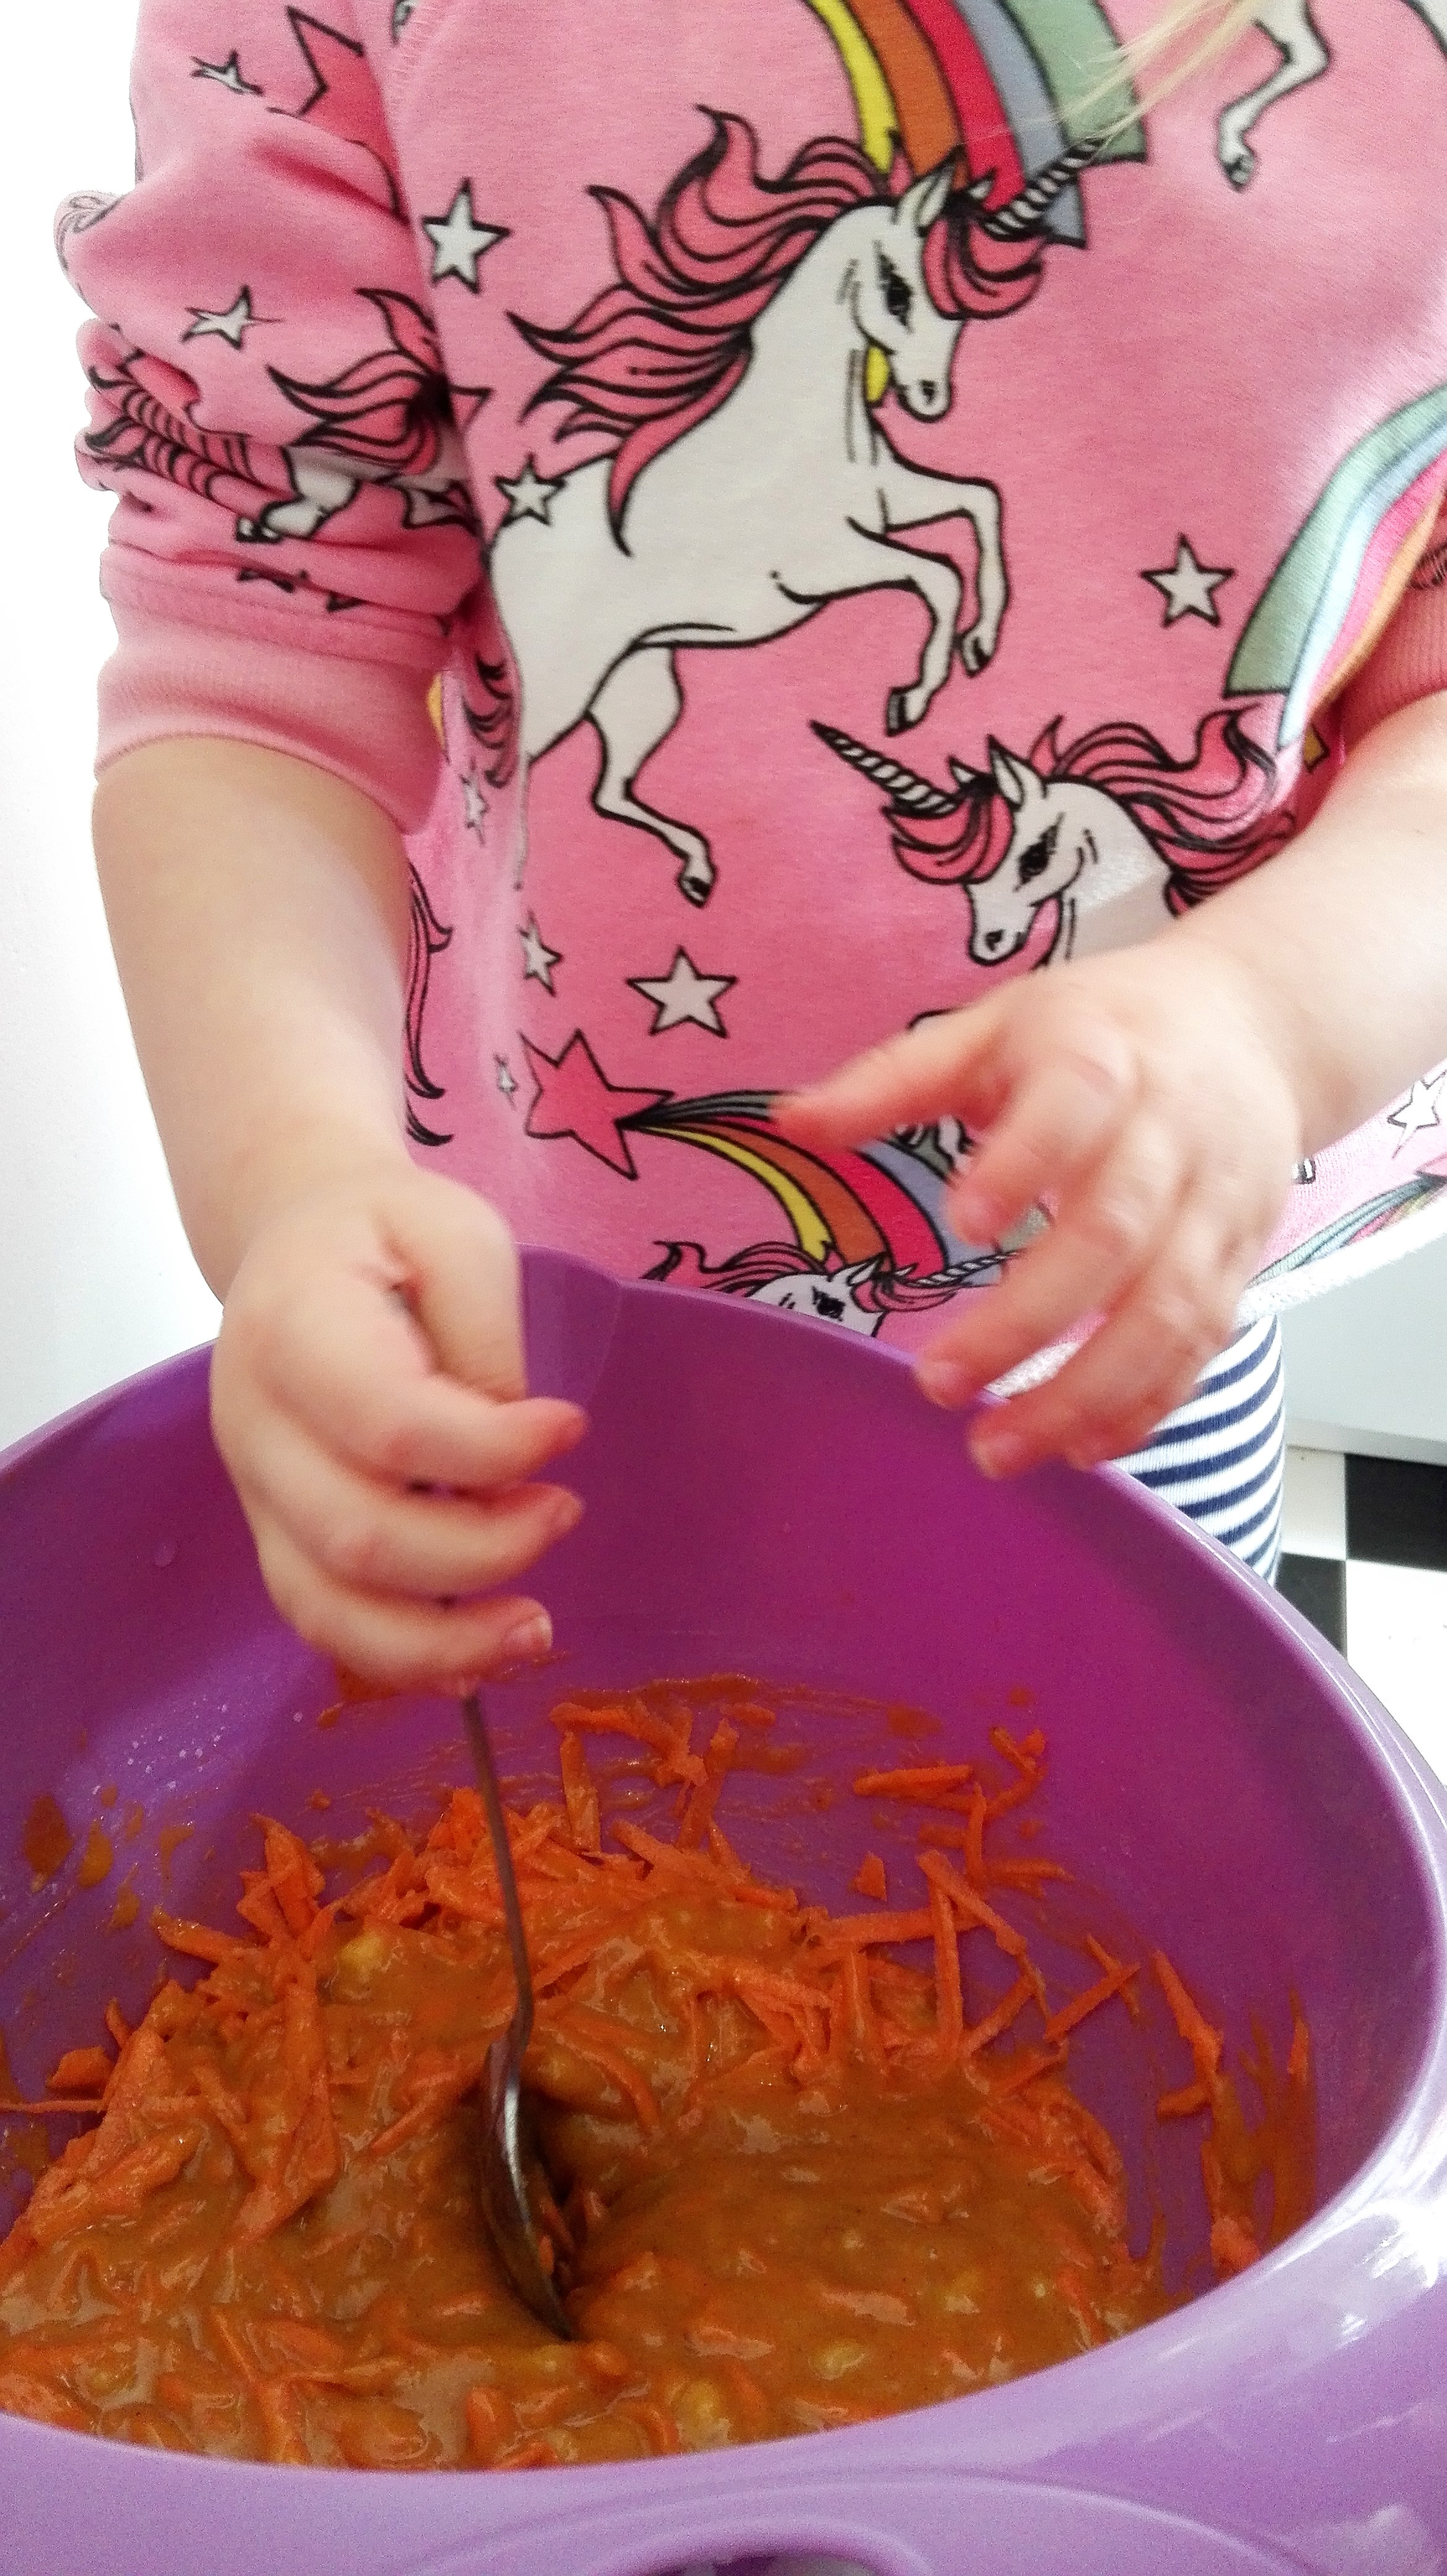 purple mixing bowl with ingredients in being mixed by child